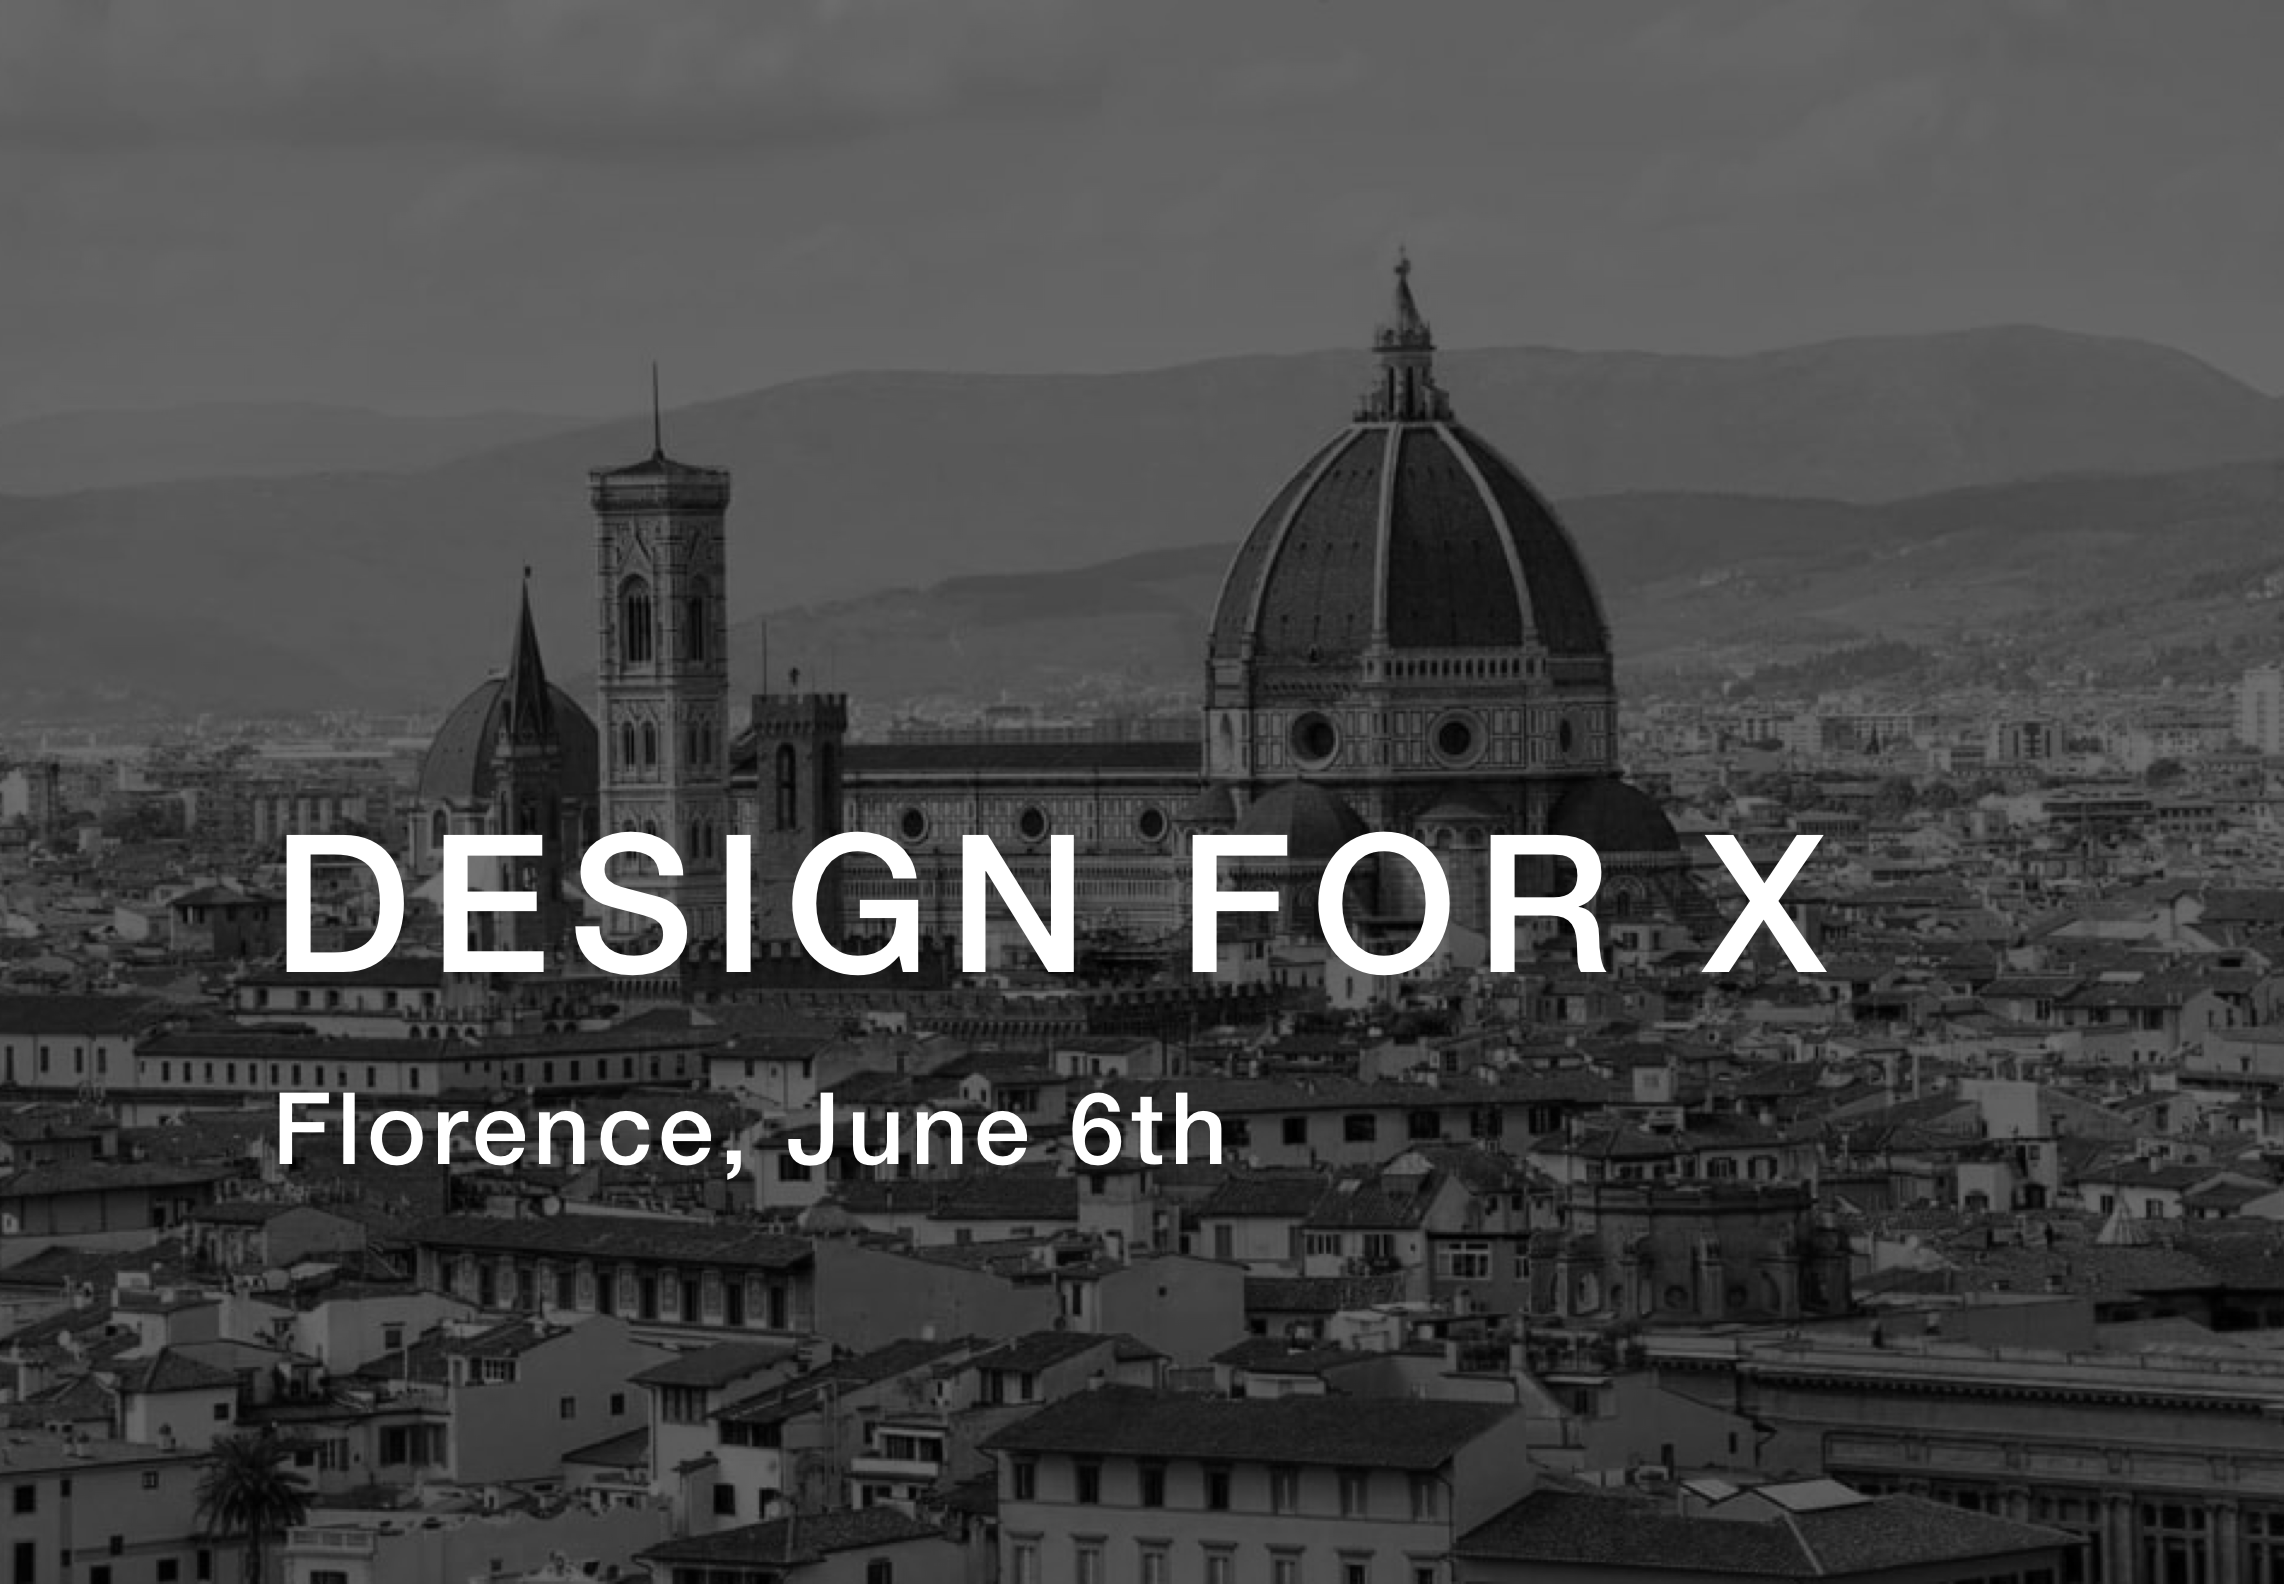 Design for X   June 6th Firenze